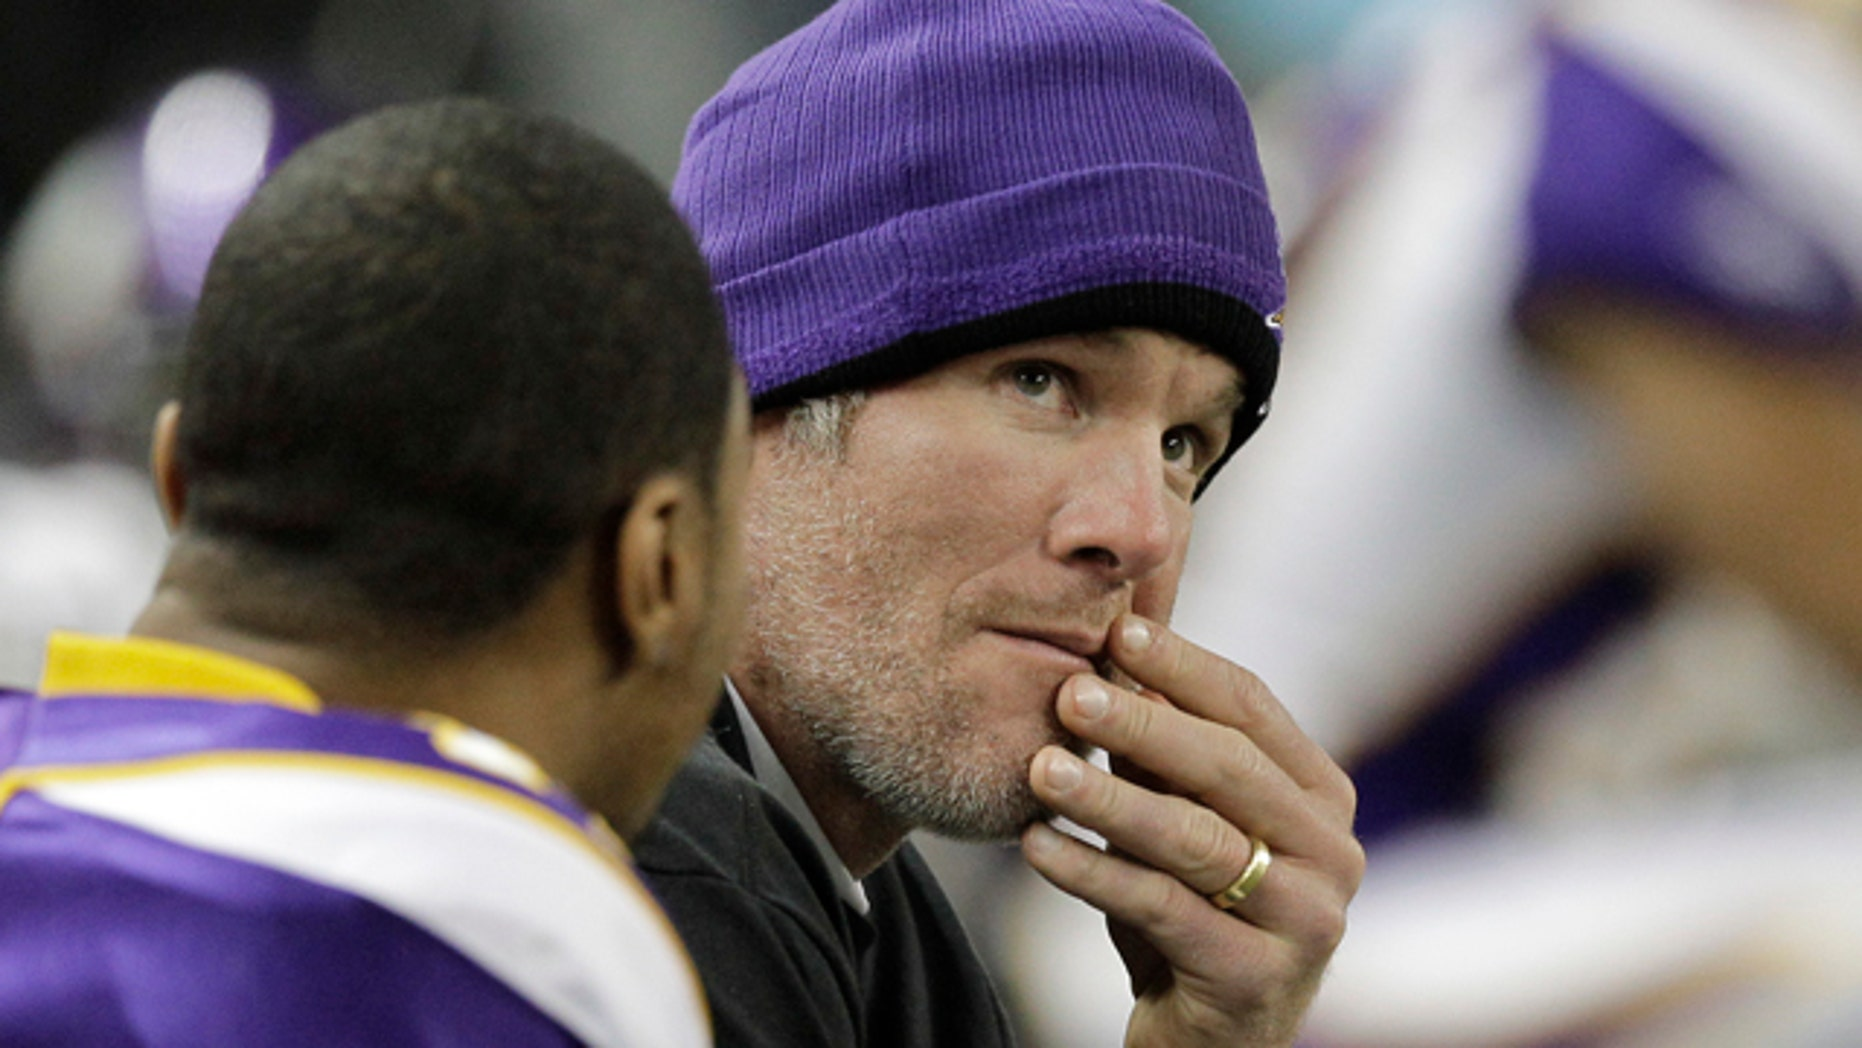 It looks like the end of the line for Brett Favre, who has reportedly turned in his retirement paperwork after 20 NFL seasons.